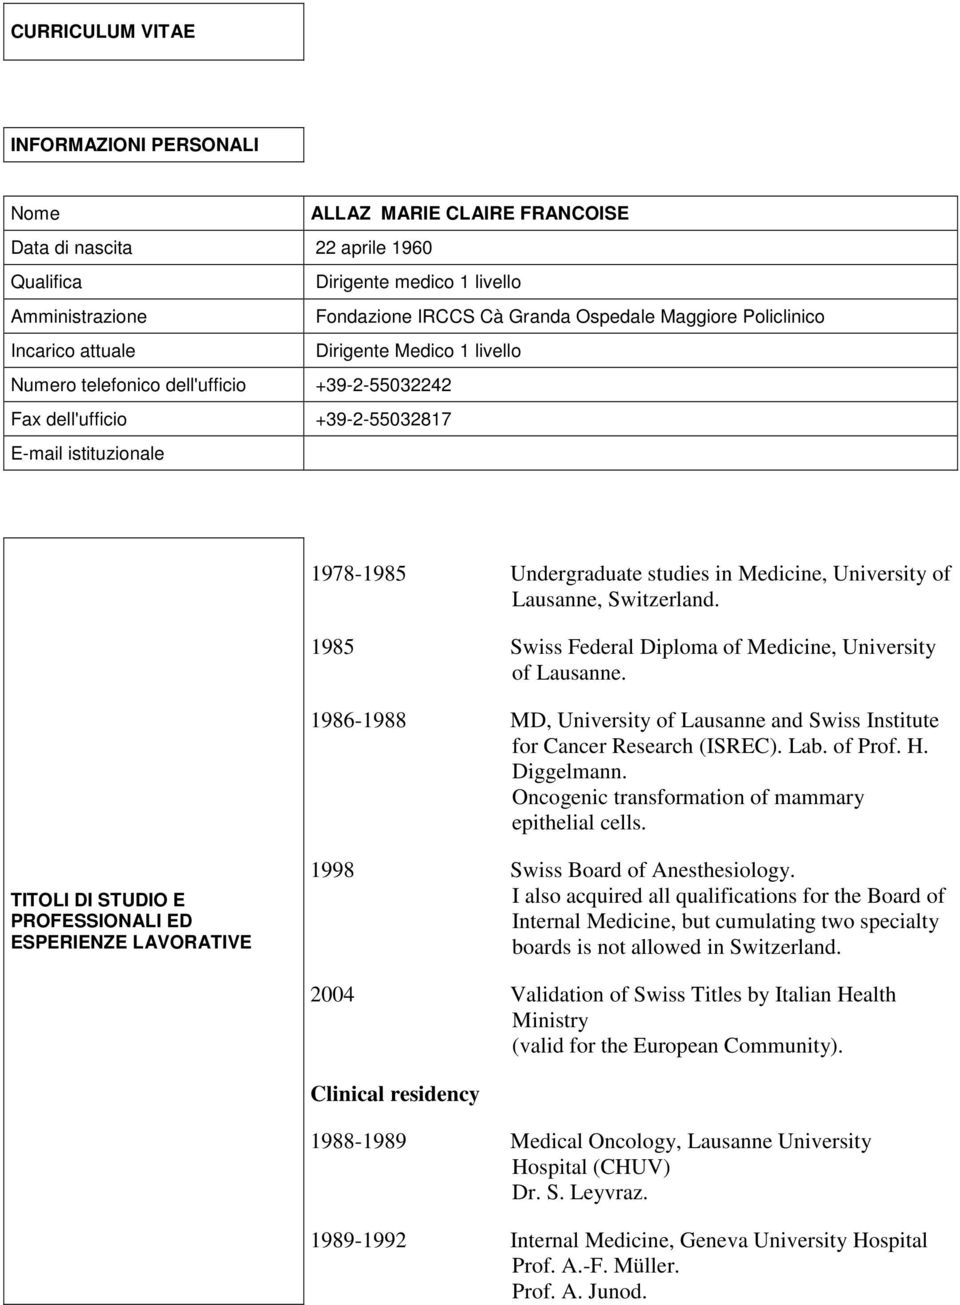 Medicine, University of Lausanne, Switzerland. 1985 Swiss Federal Diploma of Medicine, University of Lausanne. 1986-1988 MD, University of Lausanne and Swiss Institute for Cancer Research (ISREC).